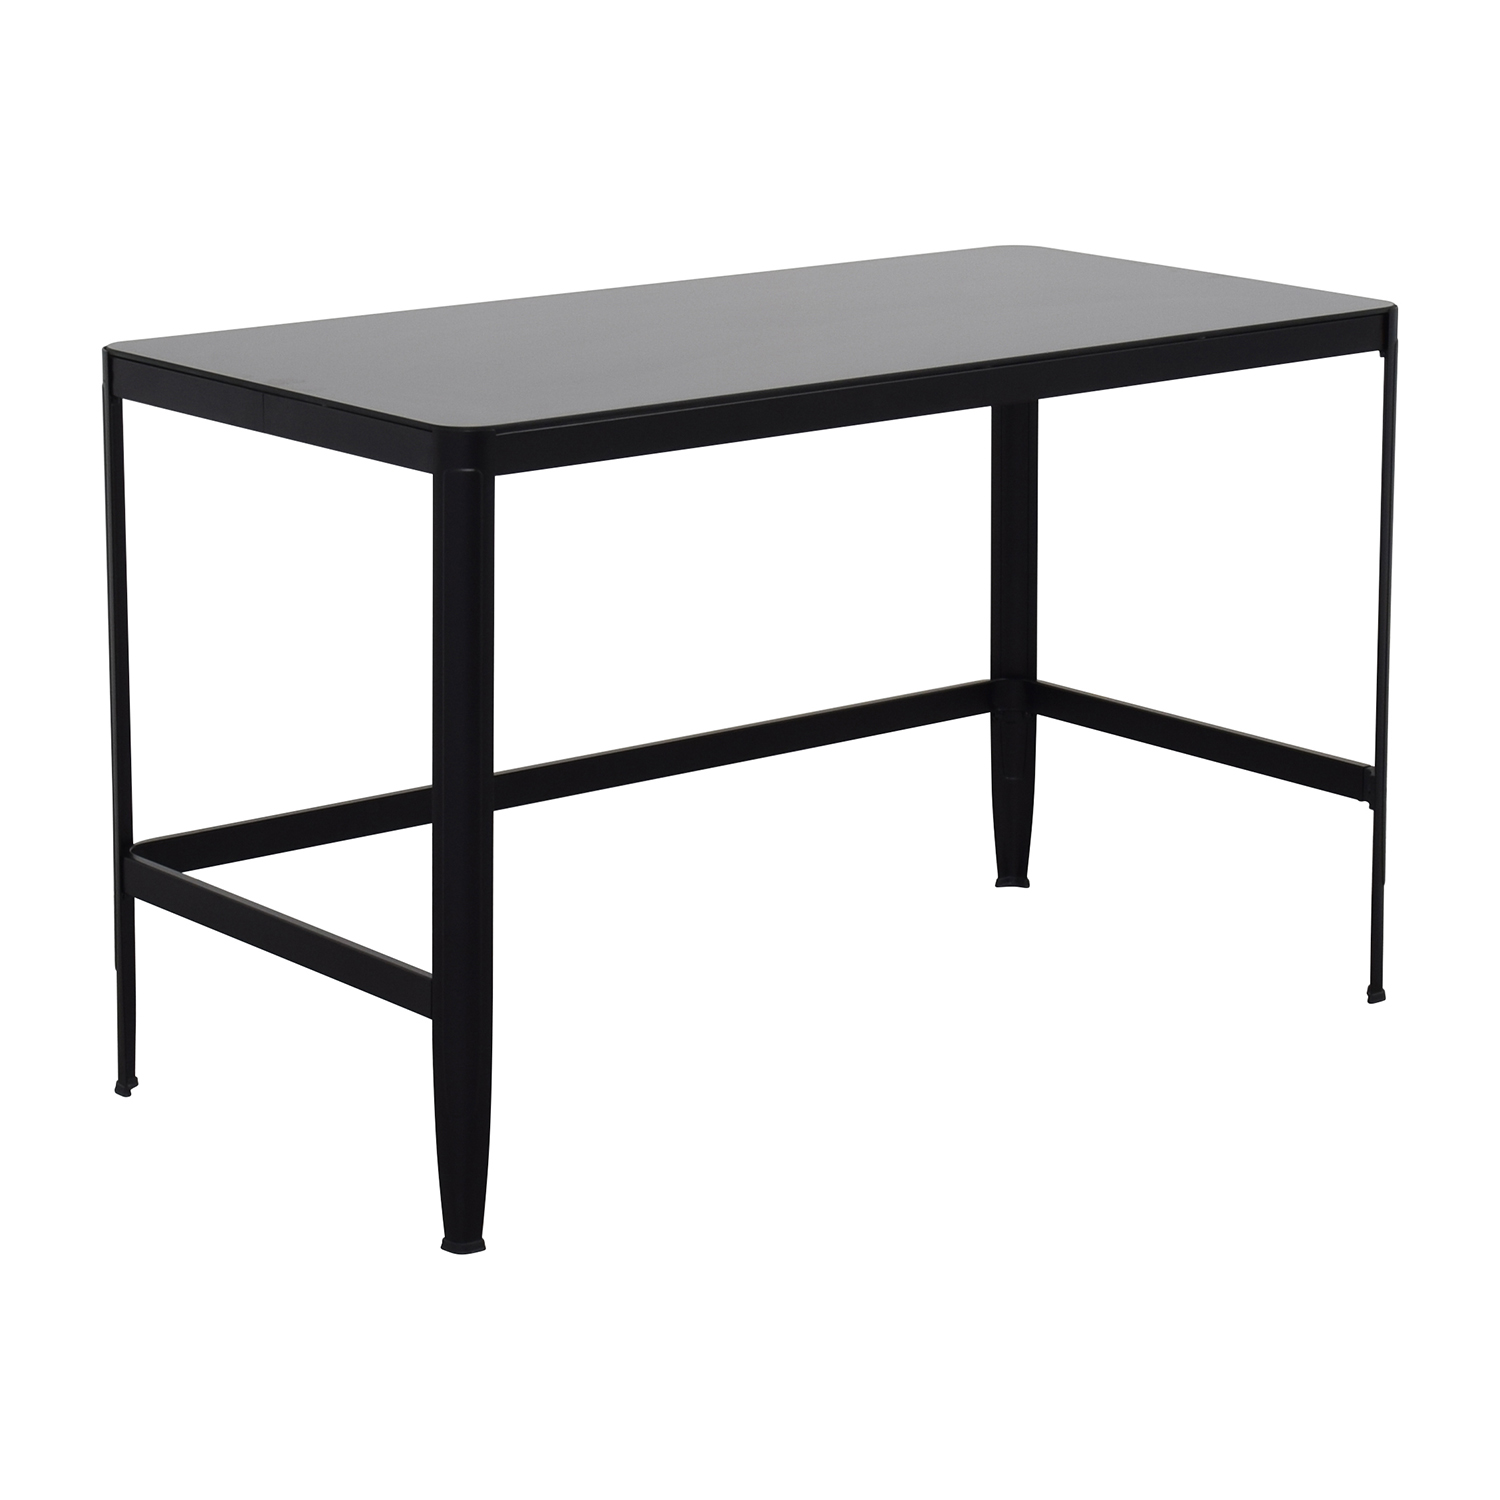 Modern Black Metal Table with Glass Top / Tables